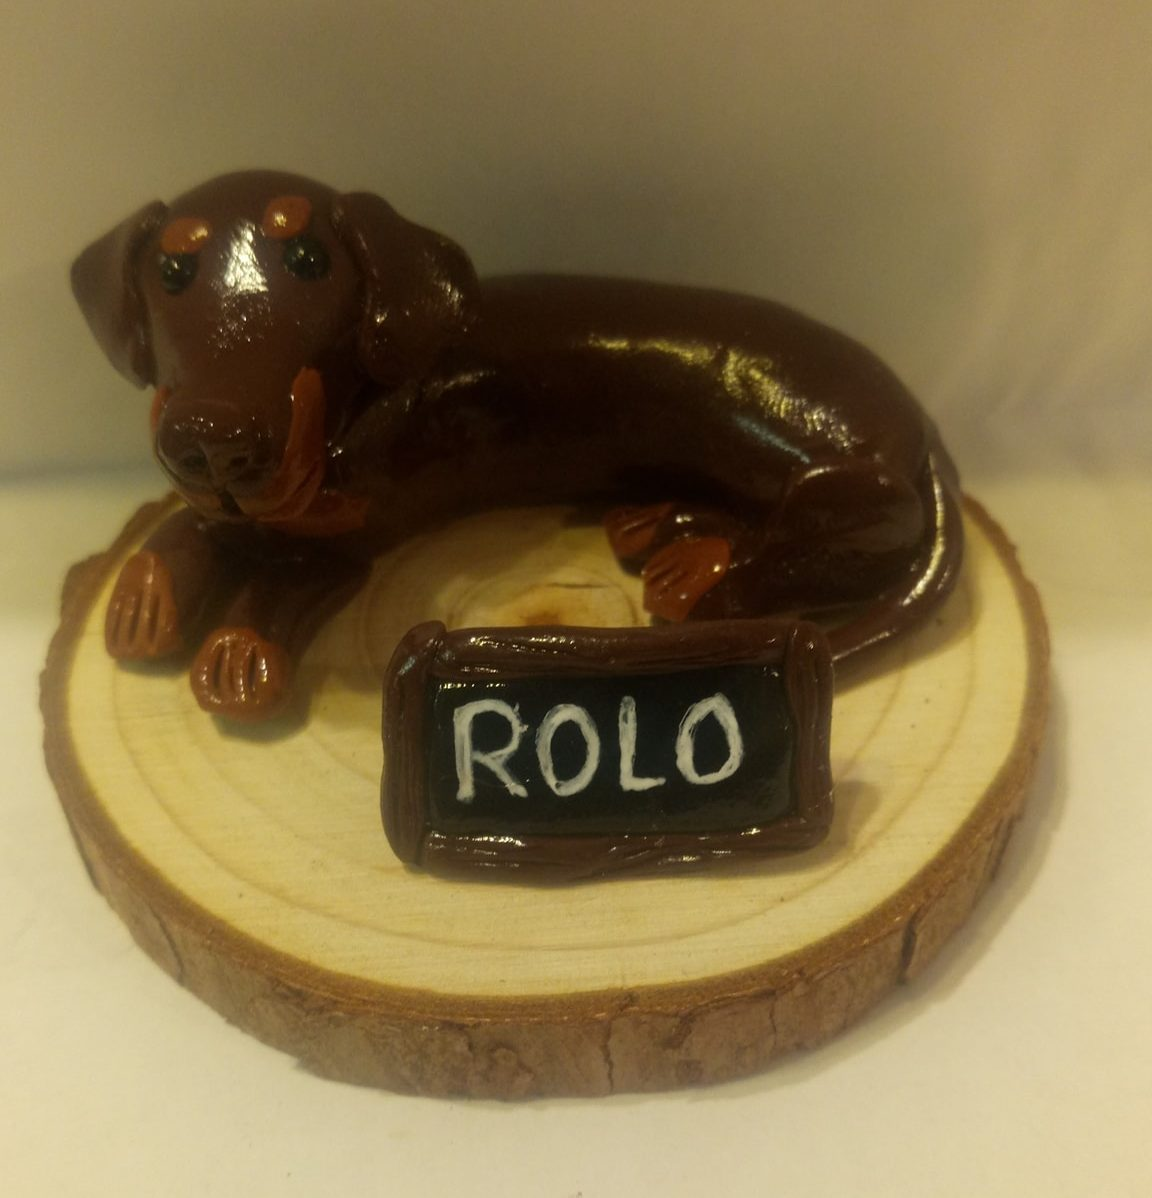 Clay dachshund lying on wooden plinth with name tag